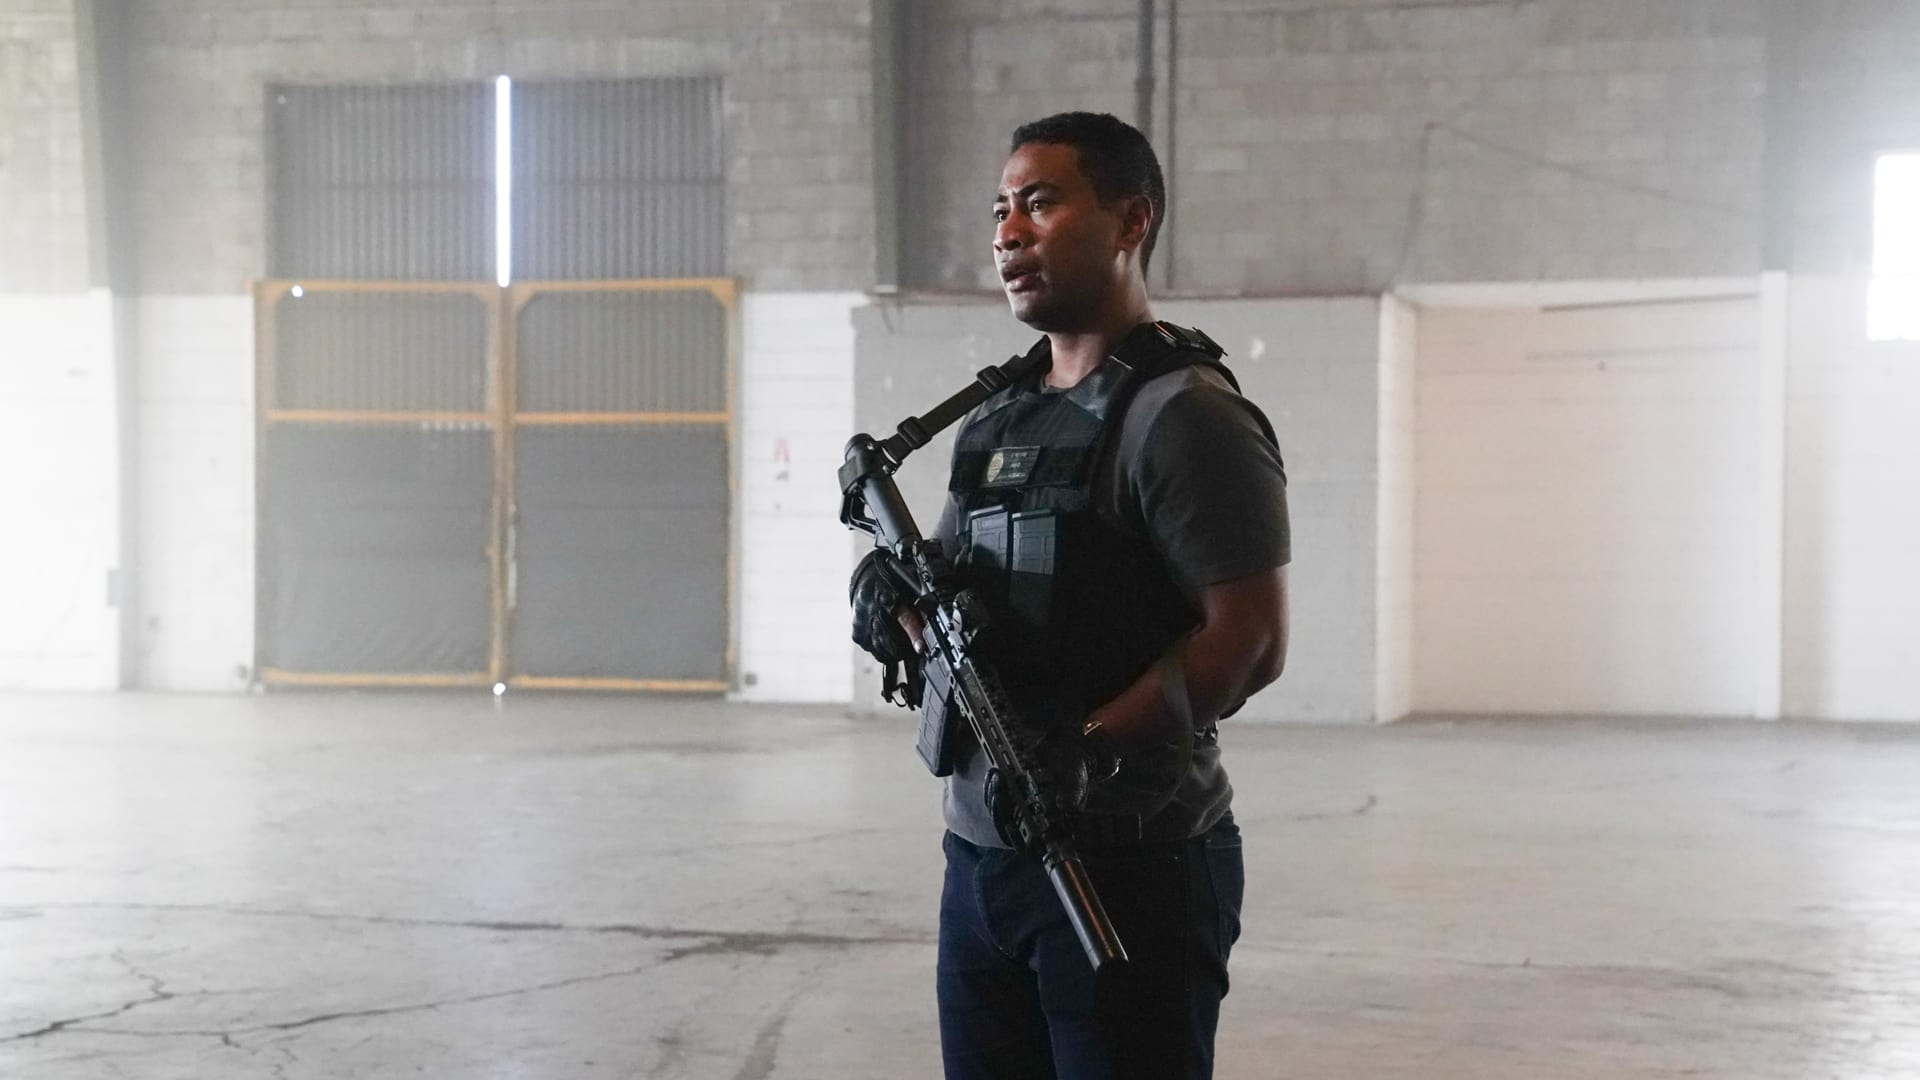 Hawaii Five-0 - Season 10 Episode 11 : Ka i ka 'ino, no ka 'ino (To Return Evil for Evil)